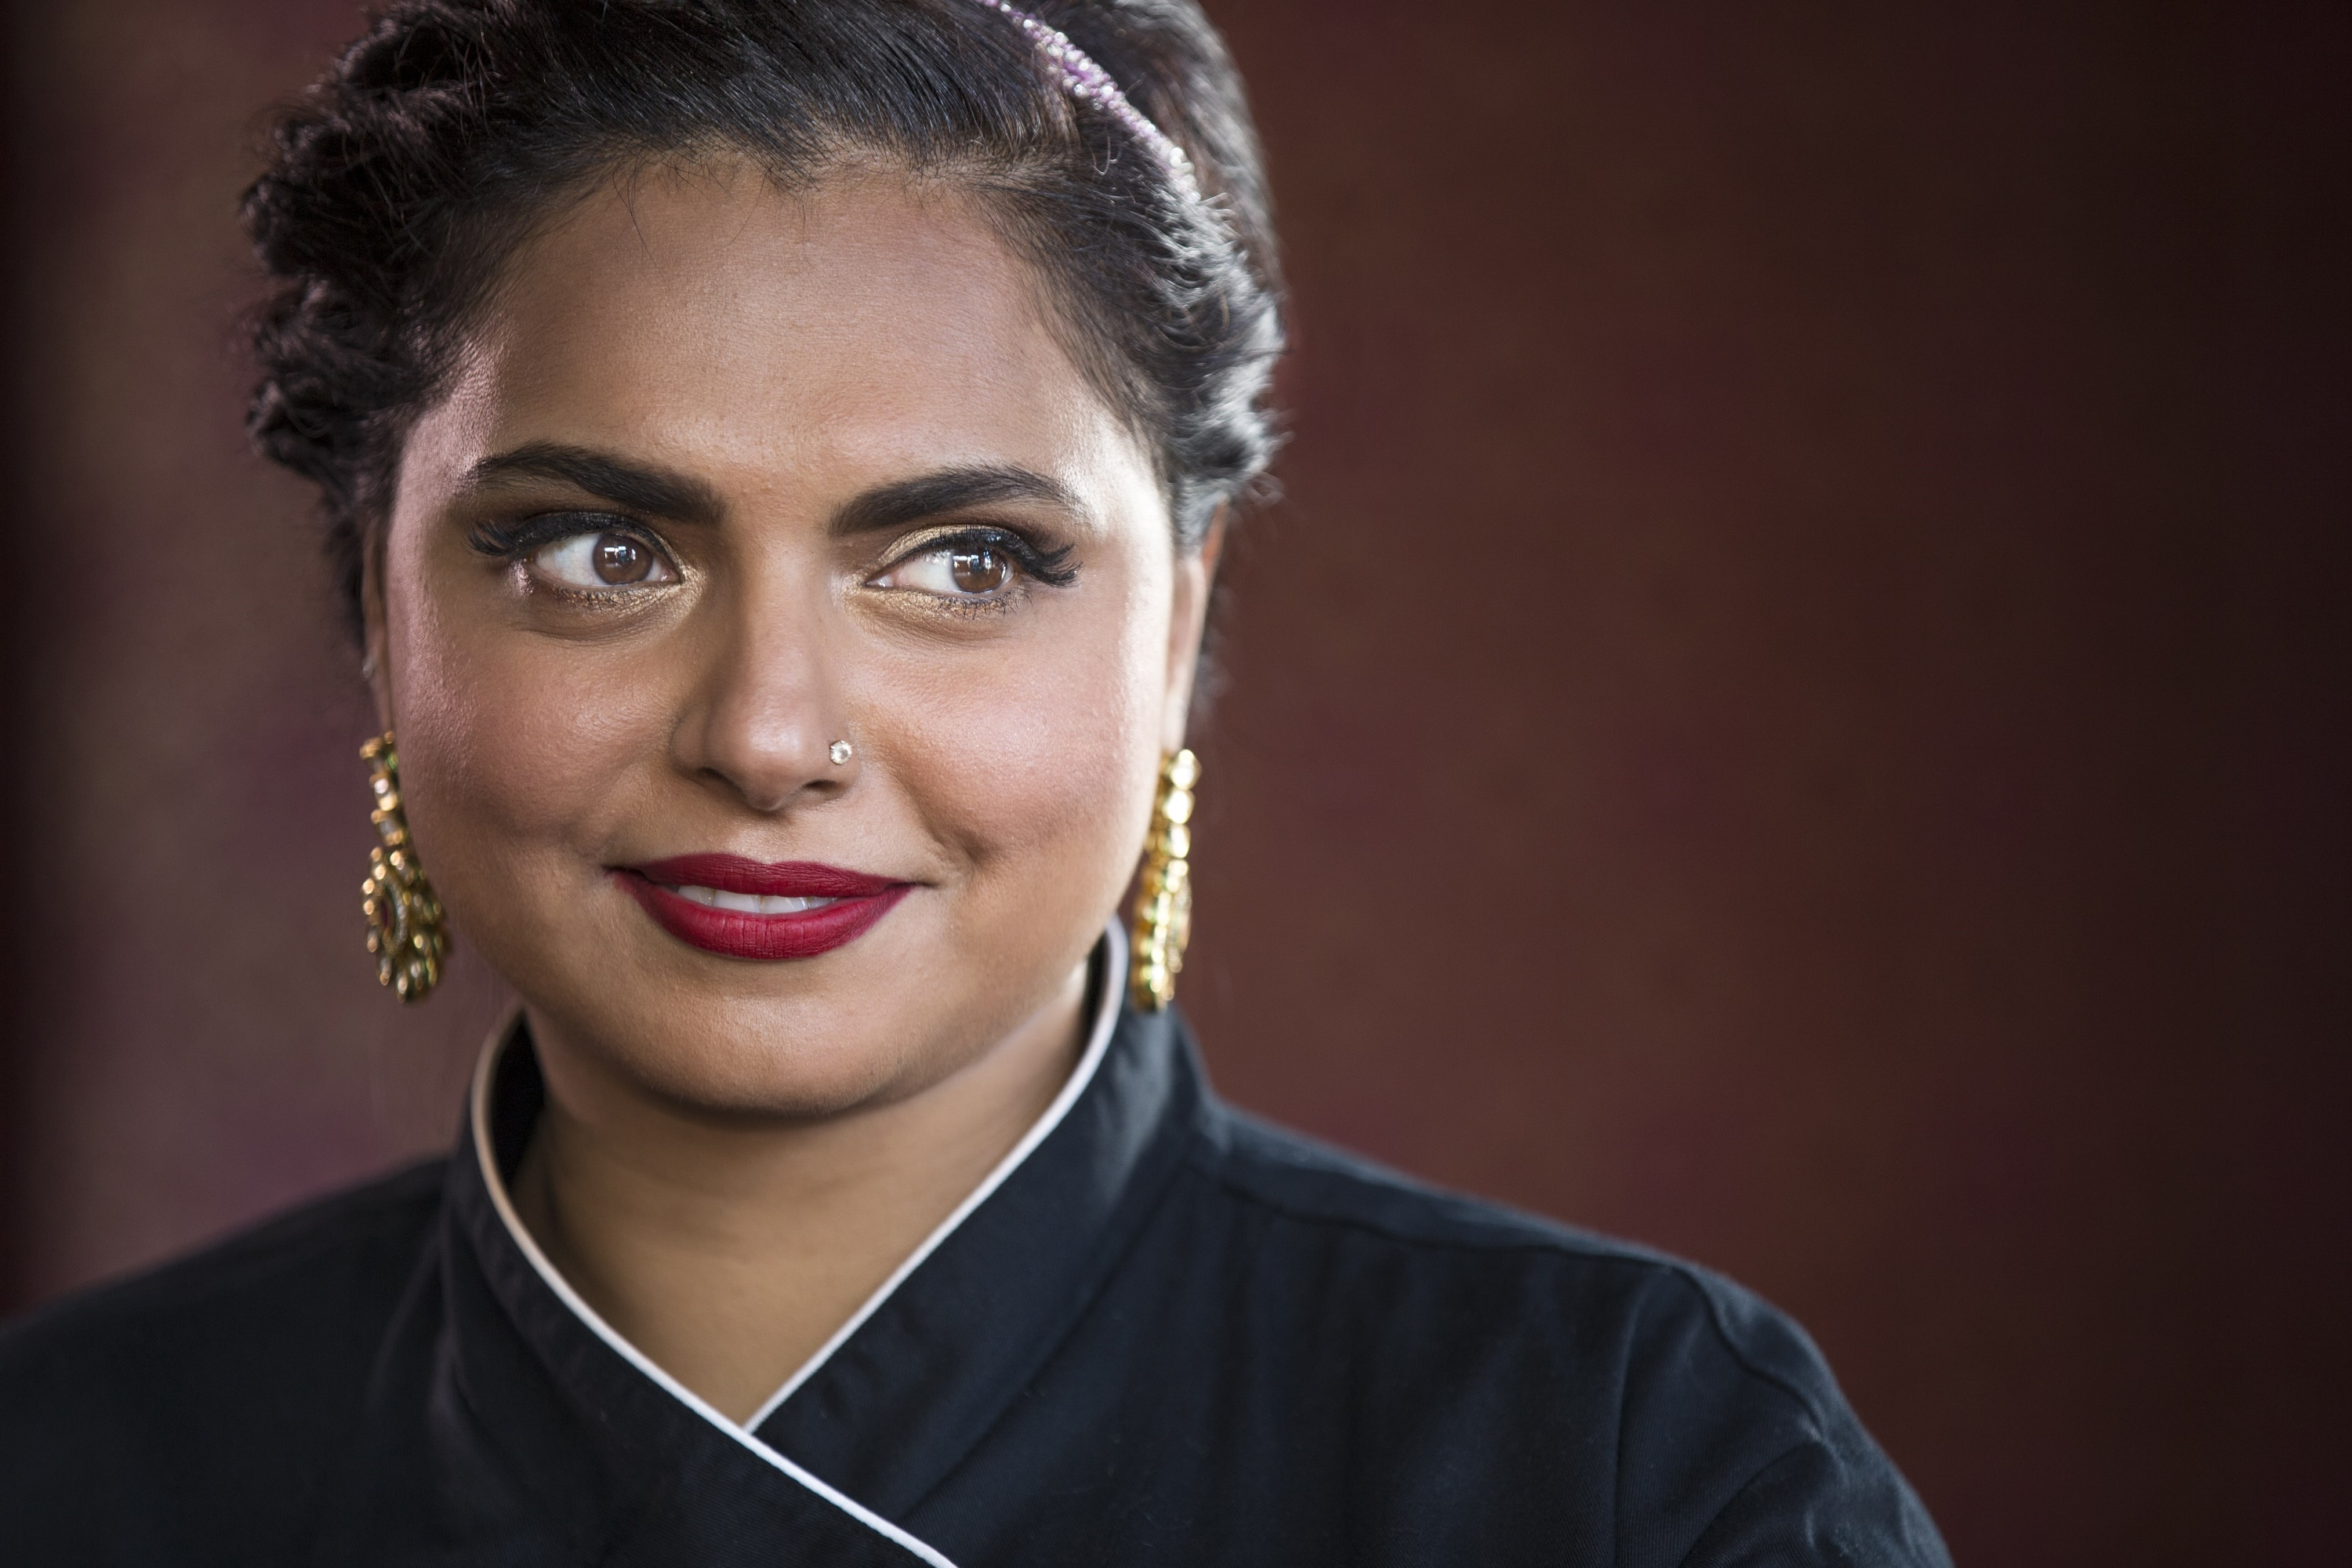 Maneet Chauhan; Photo courtesy of Charleston Wine and Food